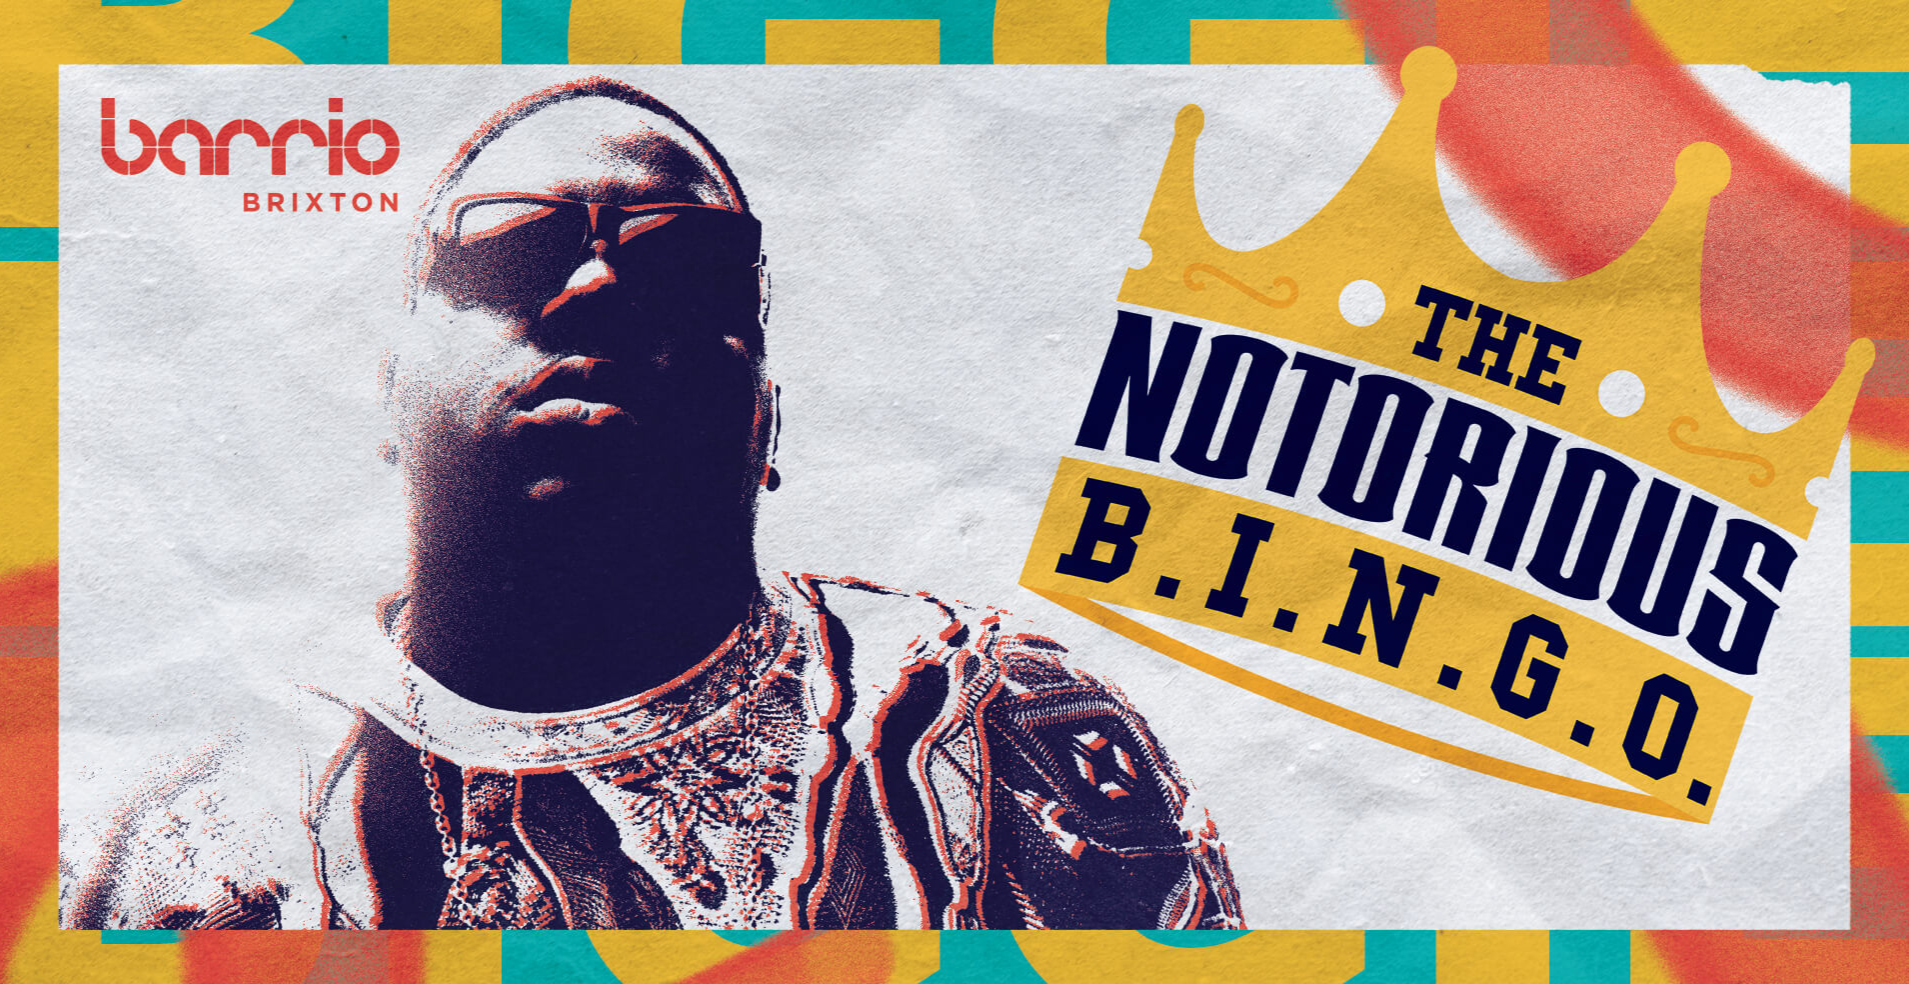 The Notorious B.I.N.G.O. | 90's Musical Bingo Bottomless Brunch